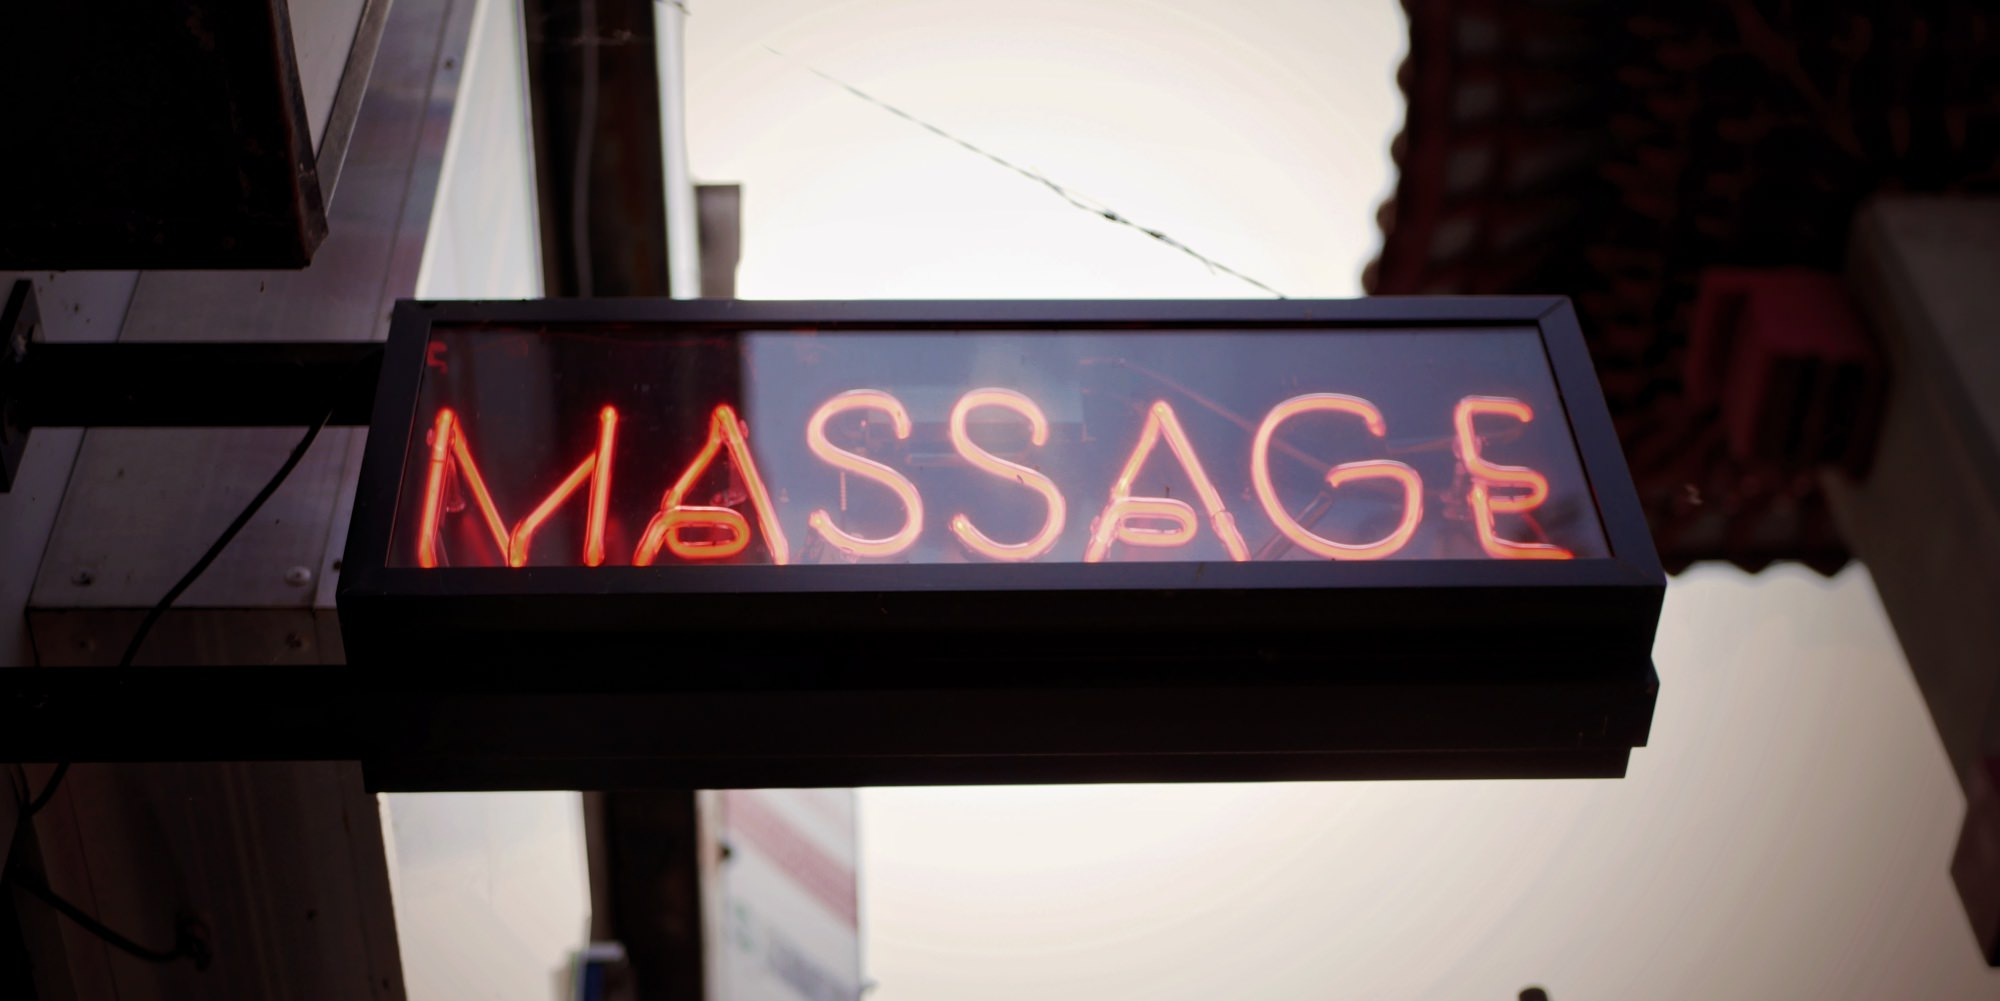 Study Finds 9,000 Massage Businesses in America Are Actually Brothels